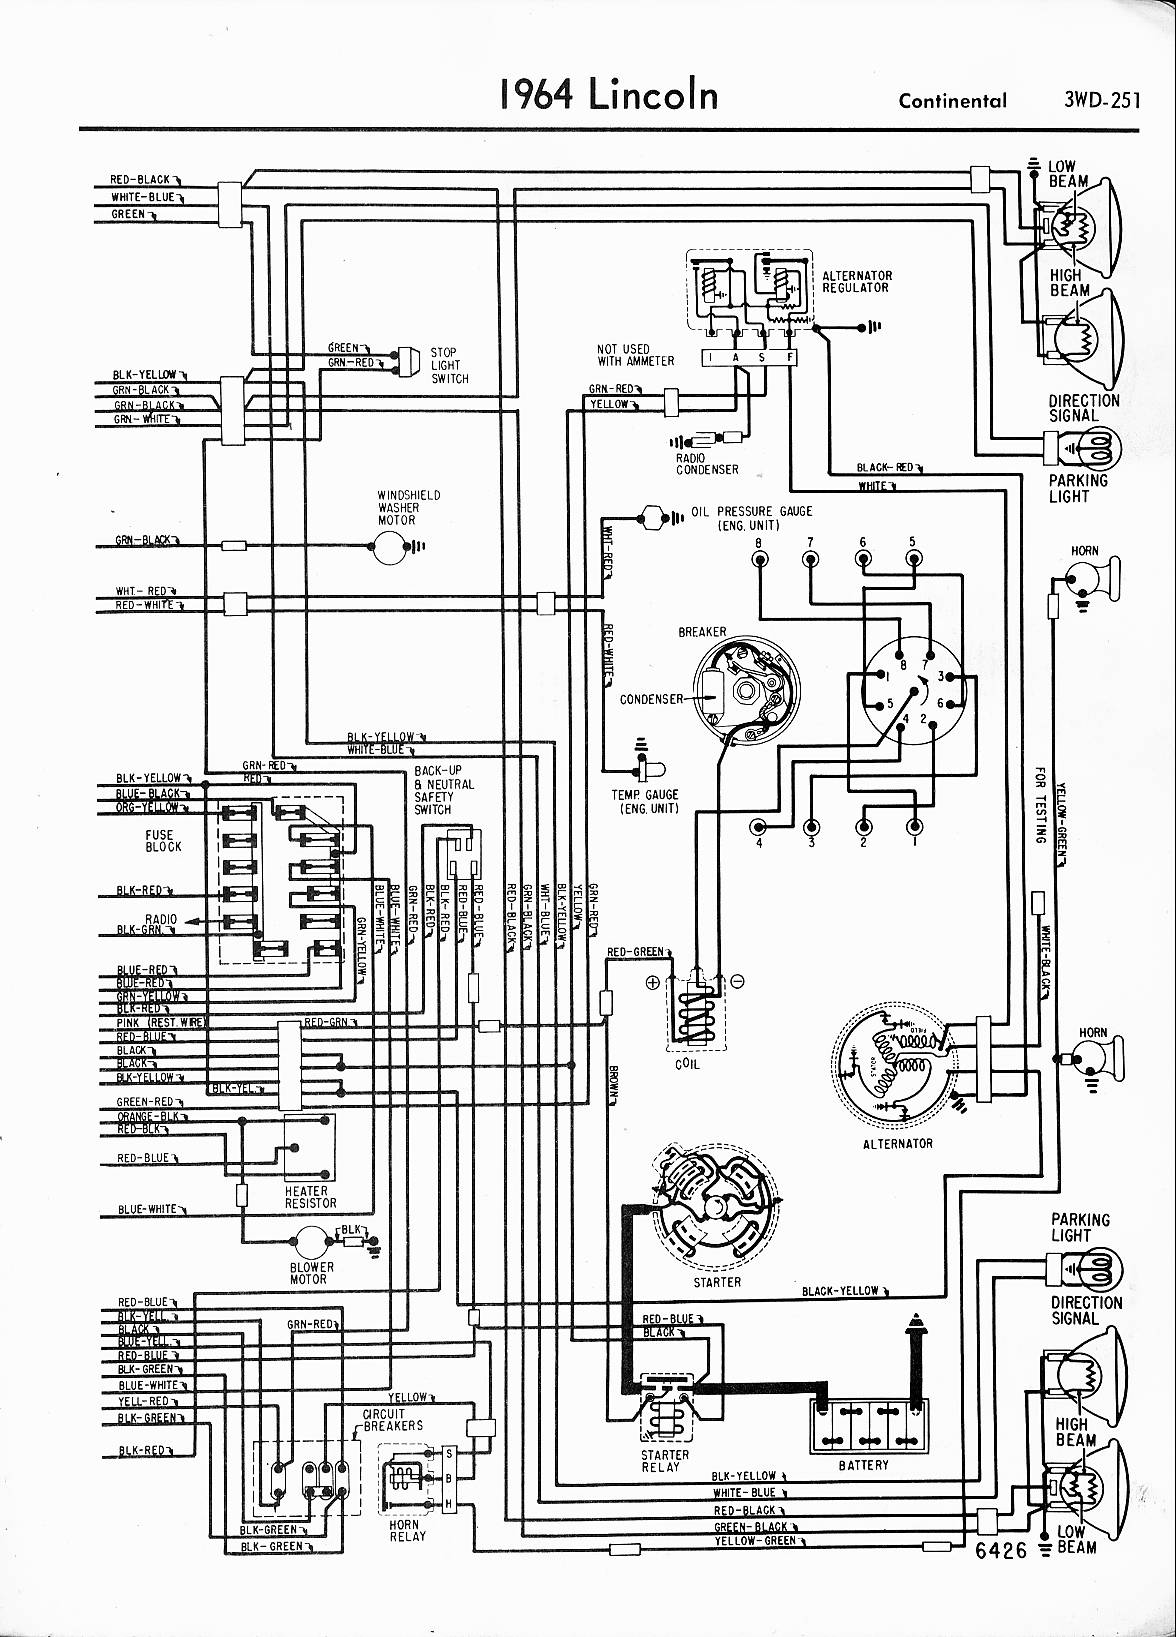 67 Lincoln Wiring Diagrams Diagram Schematics 1967 Chevy C10 Fuse Box Schematic Imperial Window Electronic 1999 Town Car